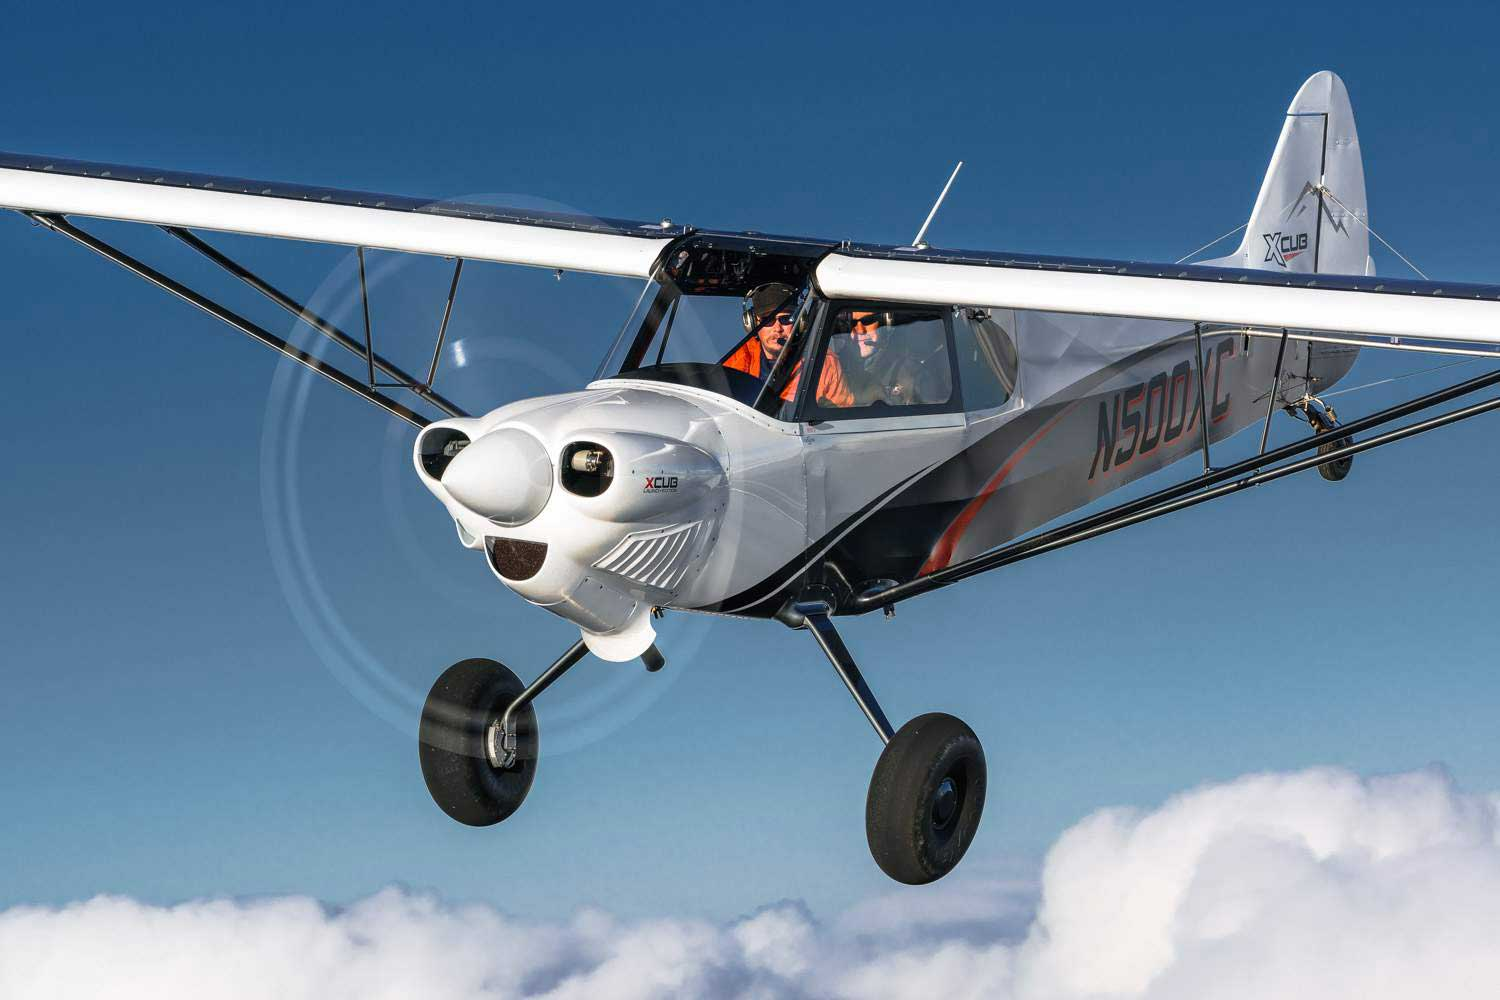 Cubcrafters Certifies New Flagship 145mph Xcub Flyer